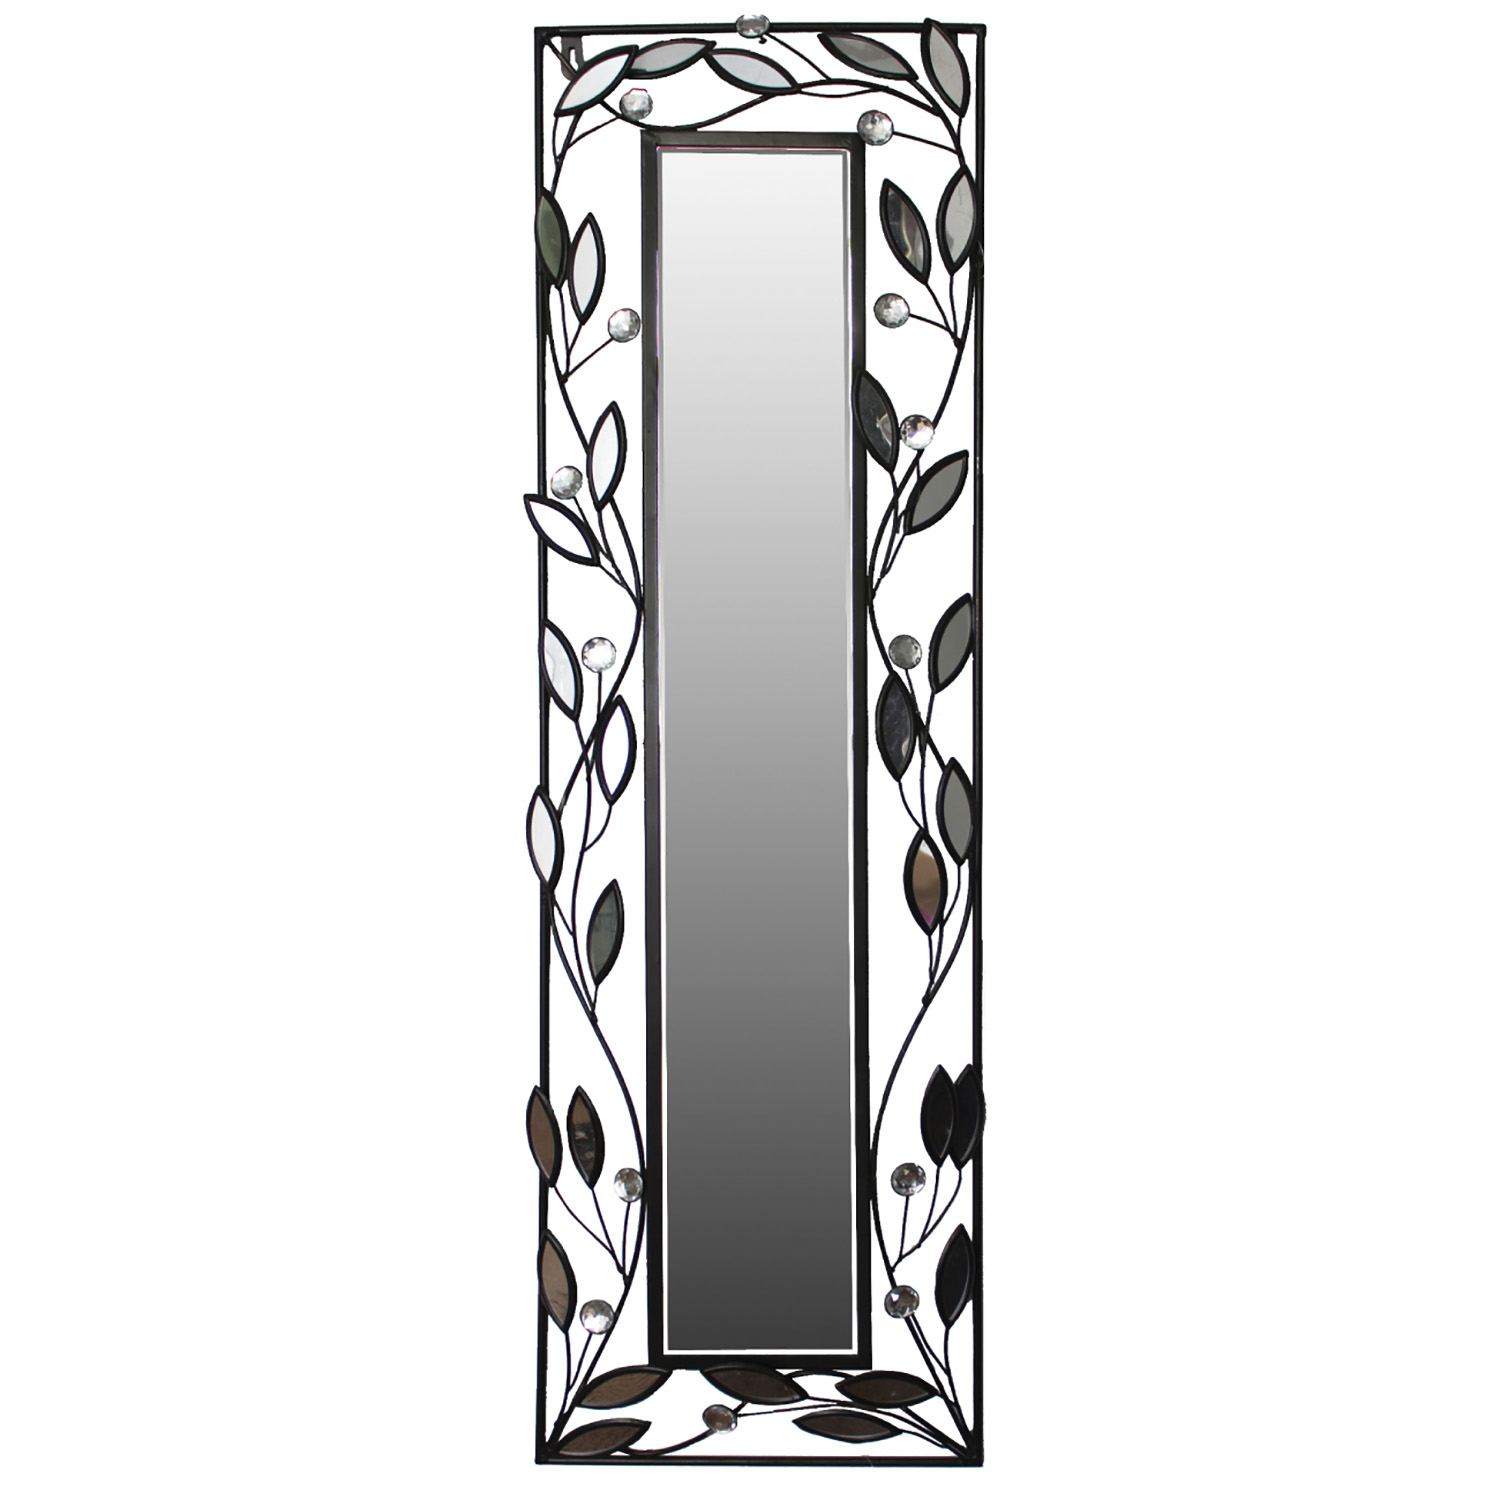 Home Source Decorative Rectangle Wall Mirror with Leaves